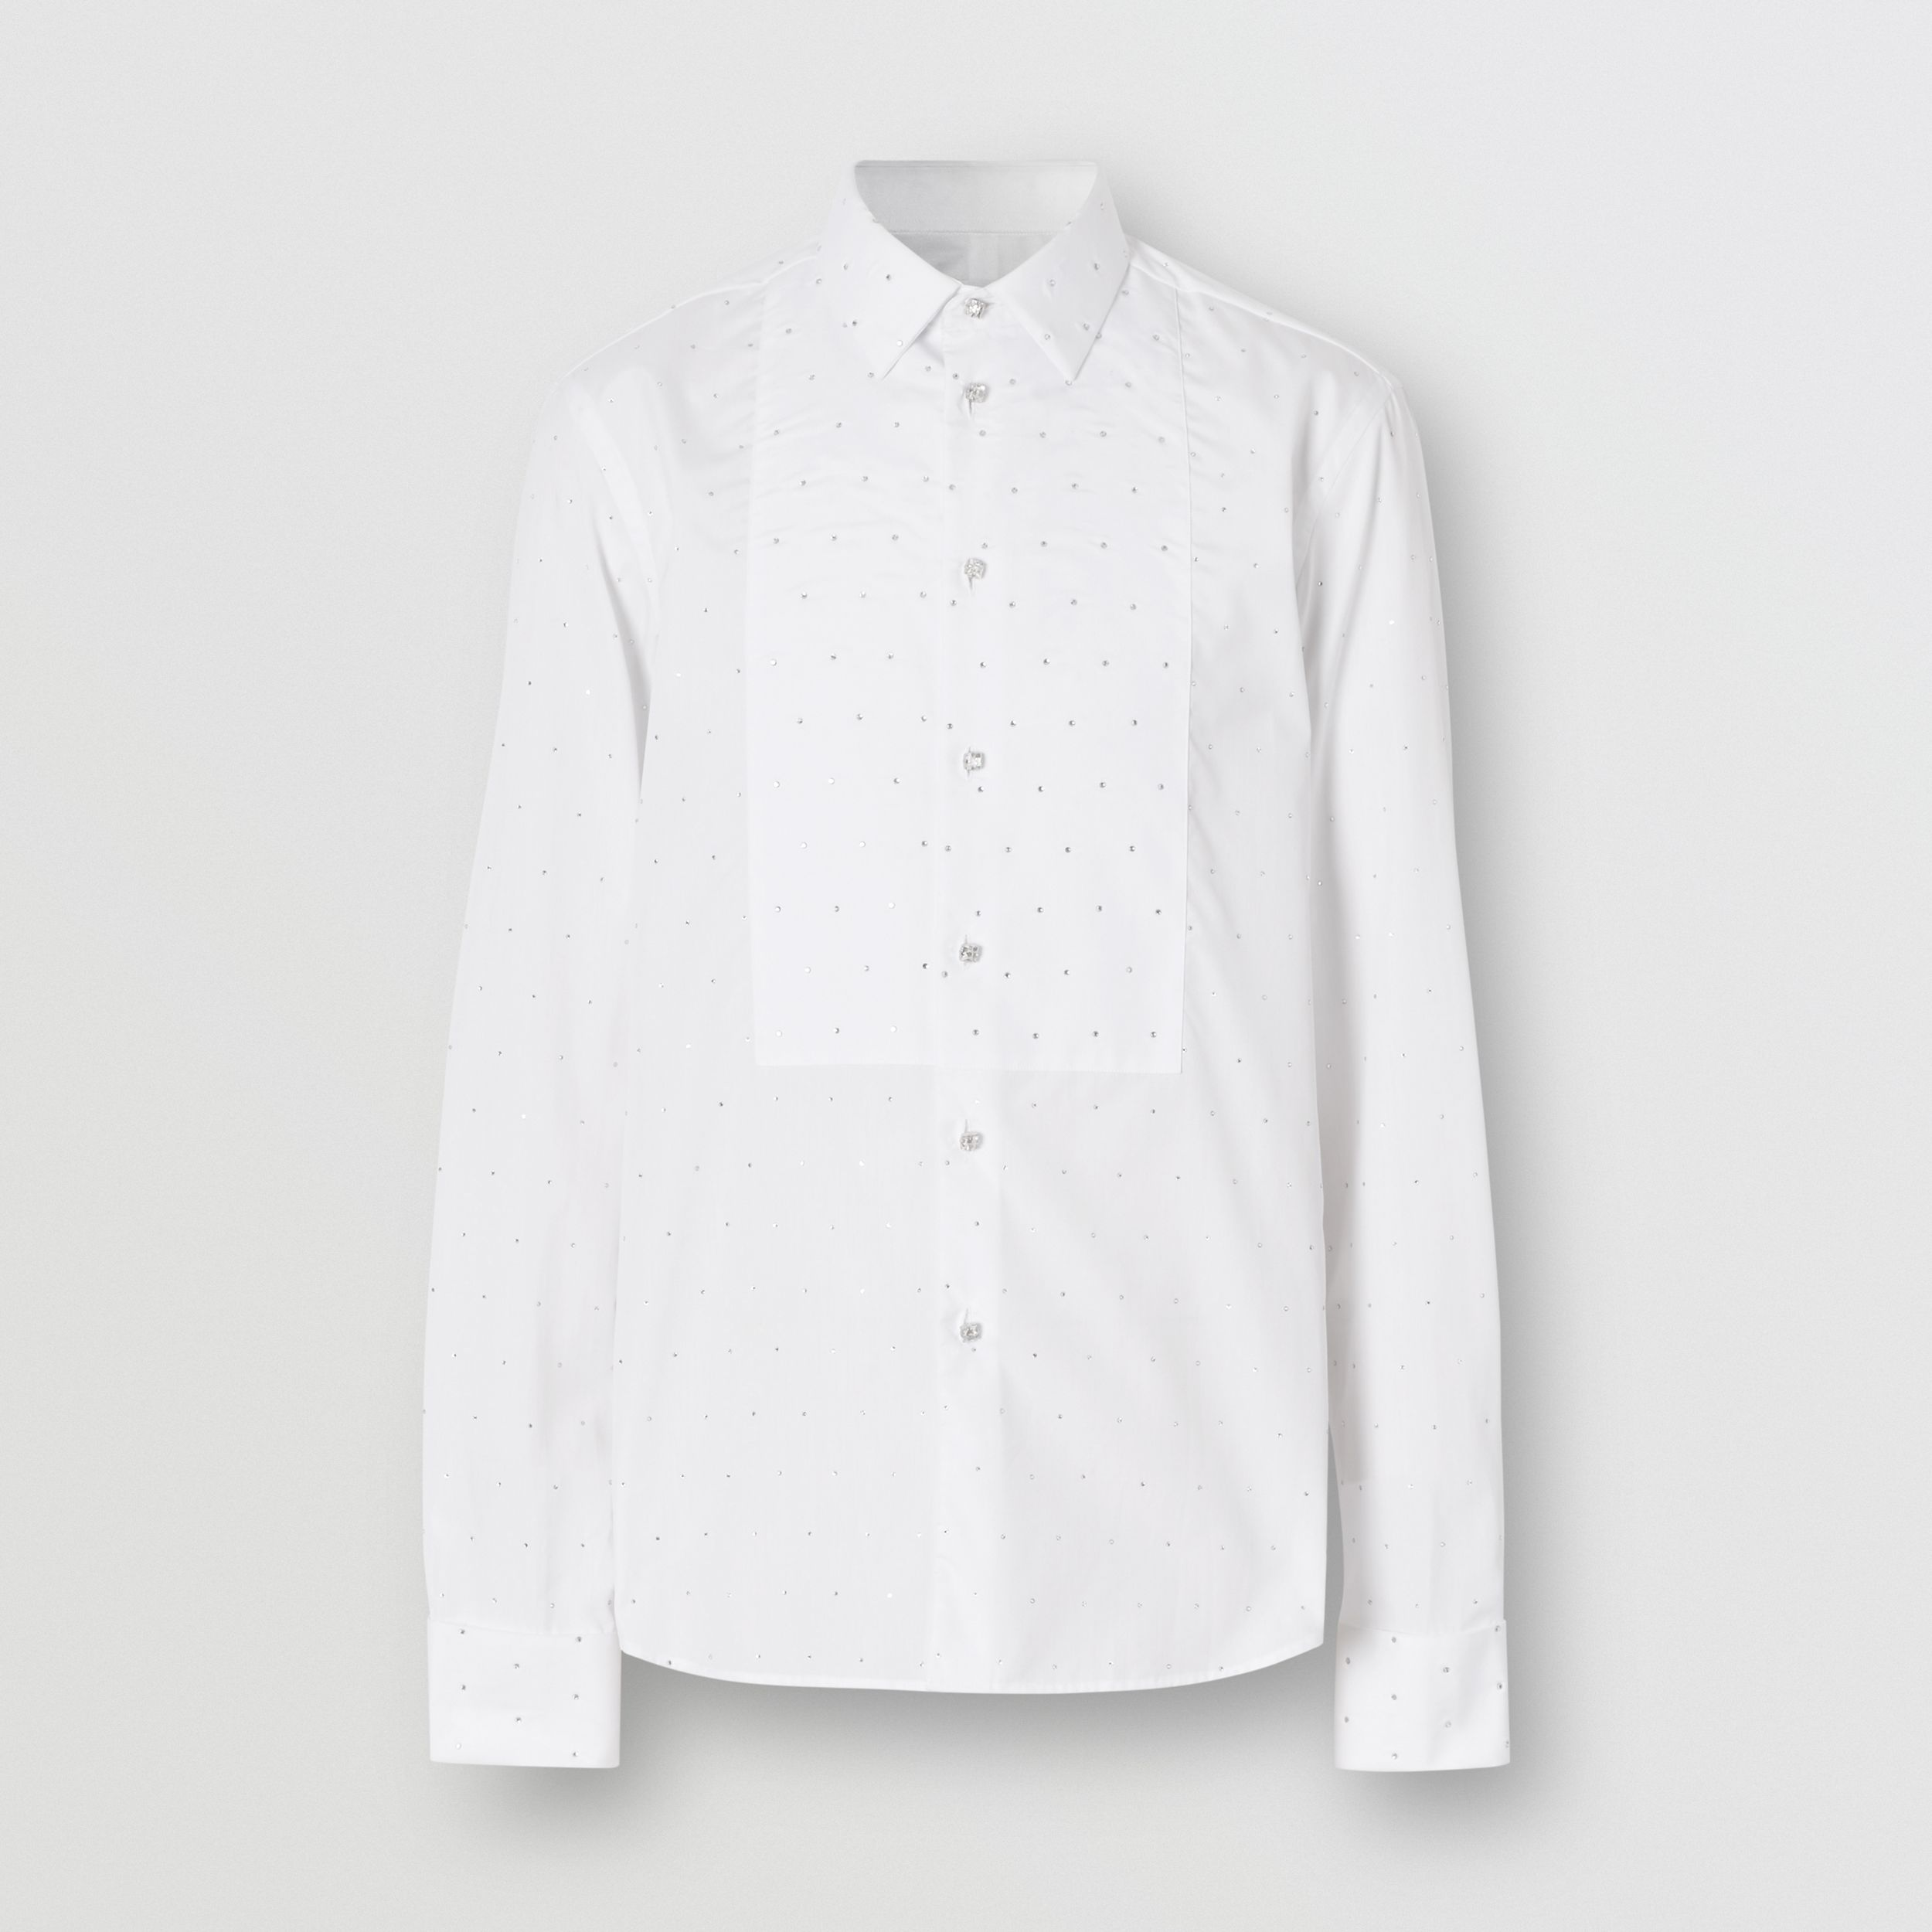 Embellished Cotton Poplin Dress Shirt in Optic White - Men | Burberry - 4